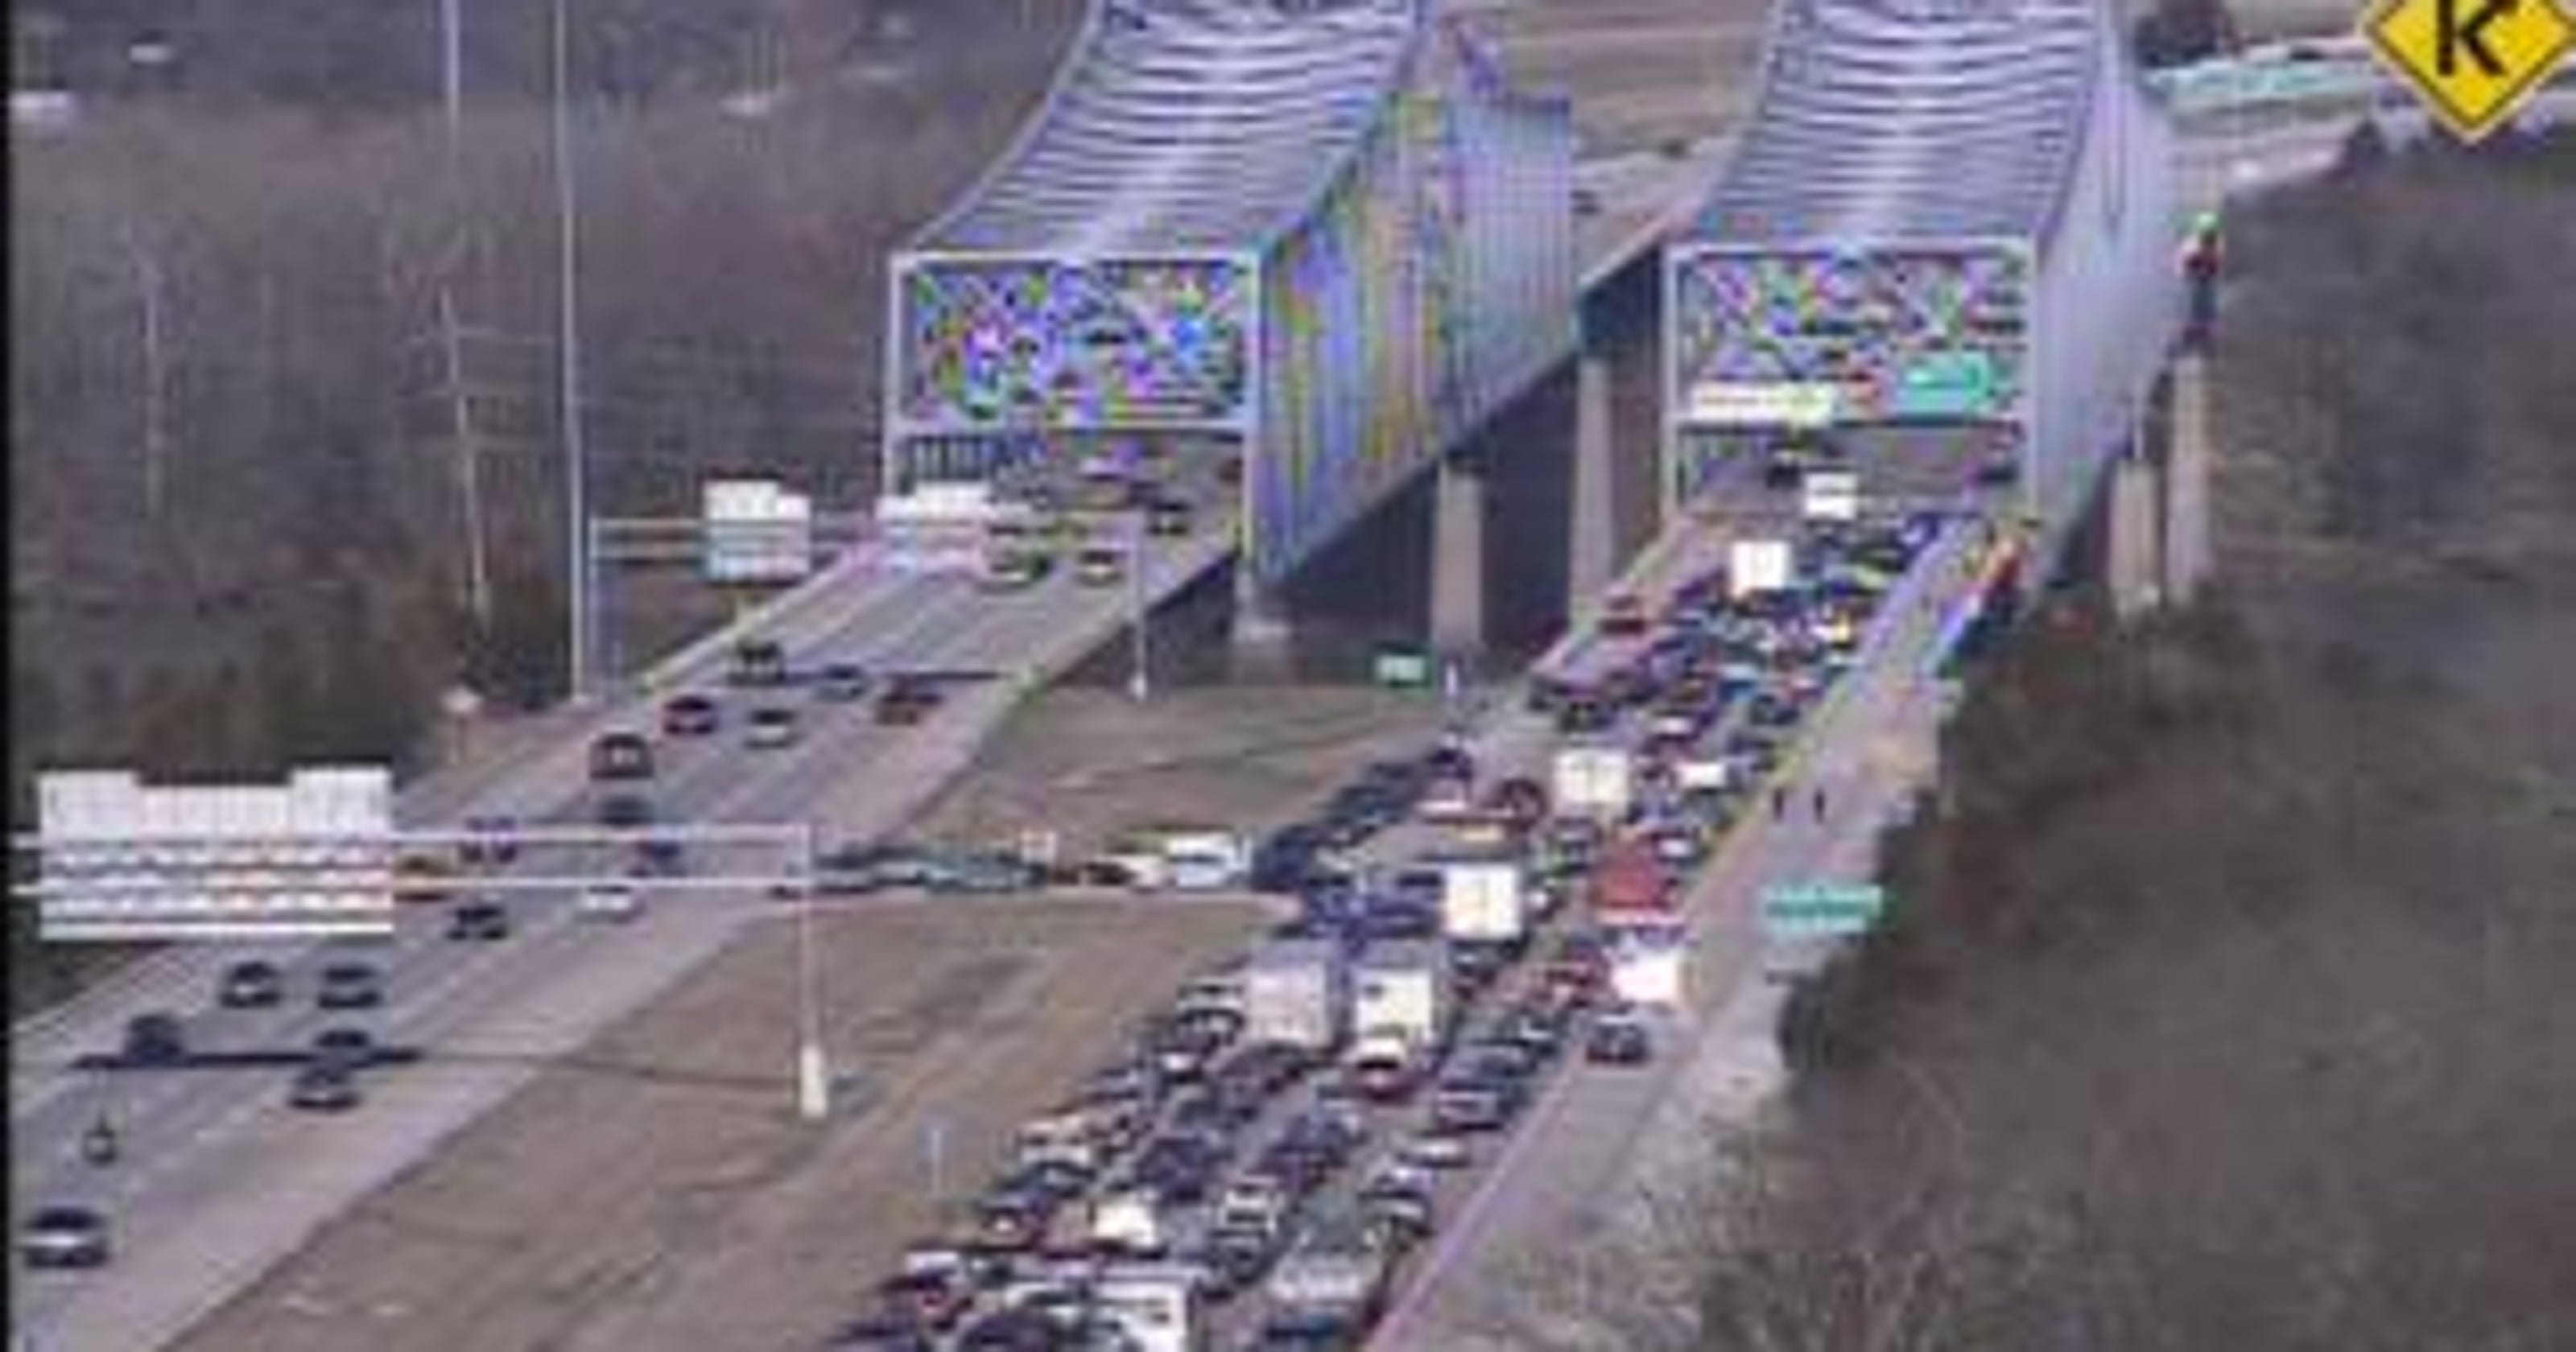 Cincinnati traffic: Hell in the future for motorists